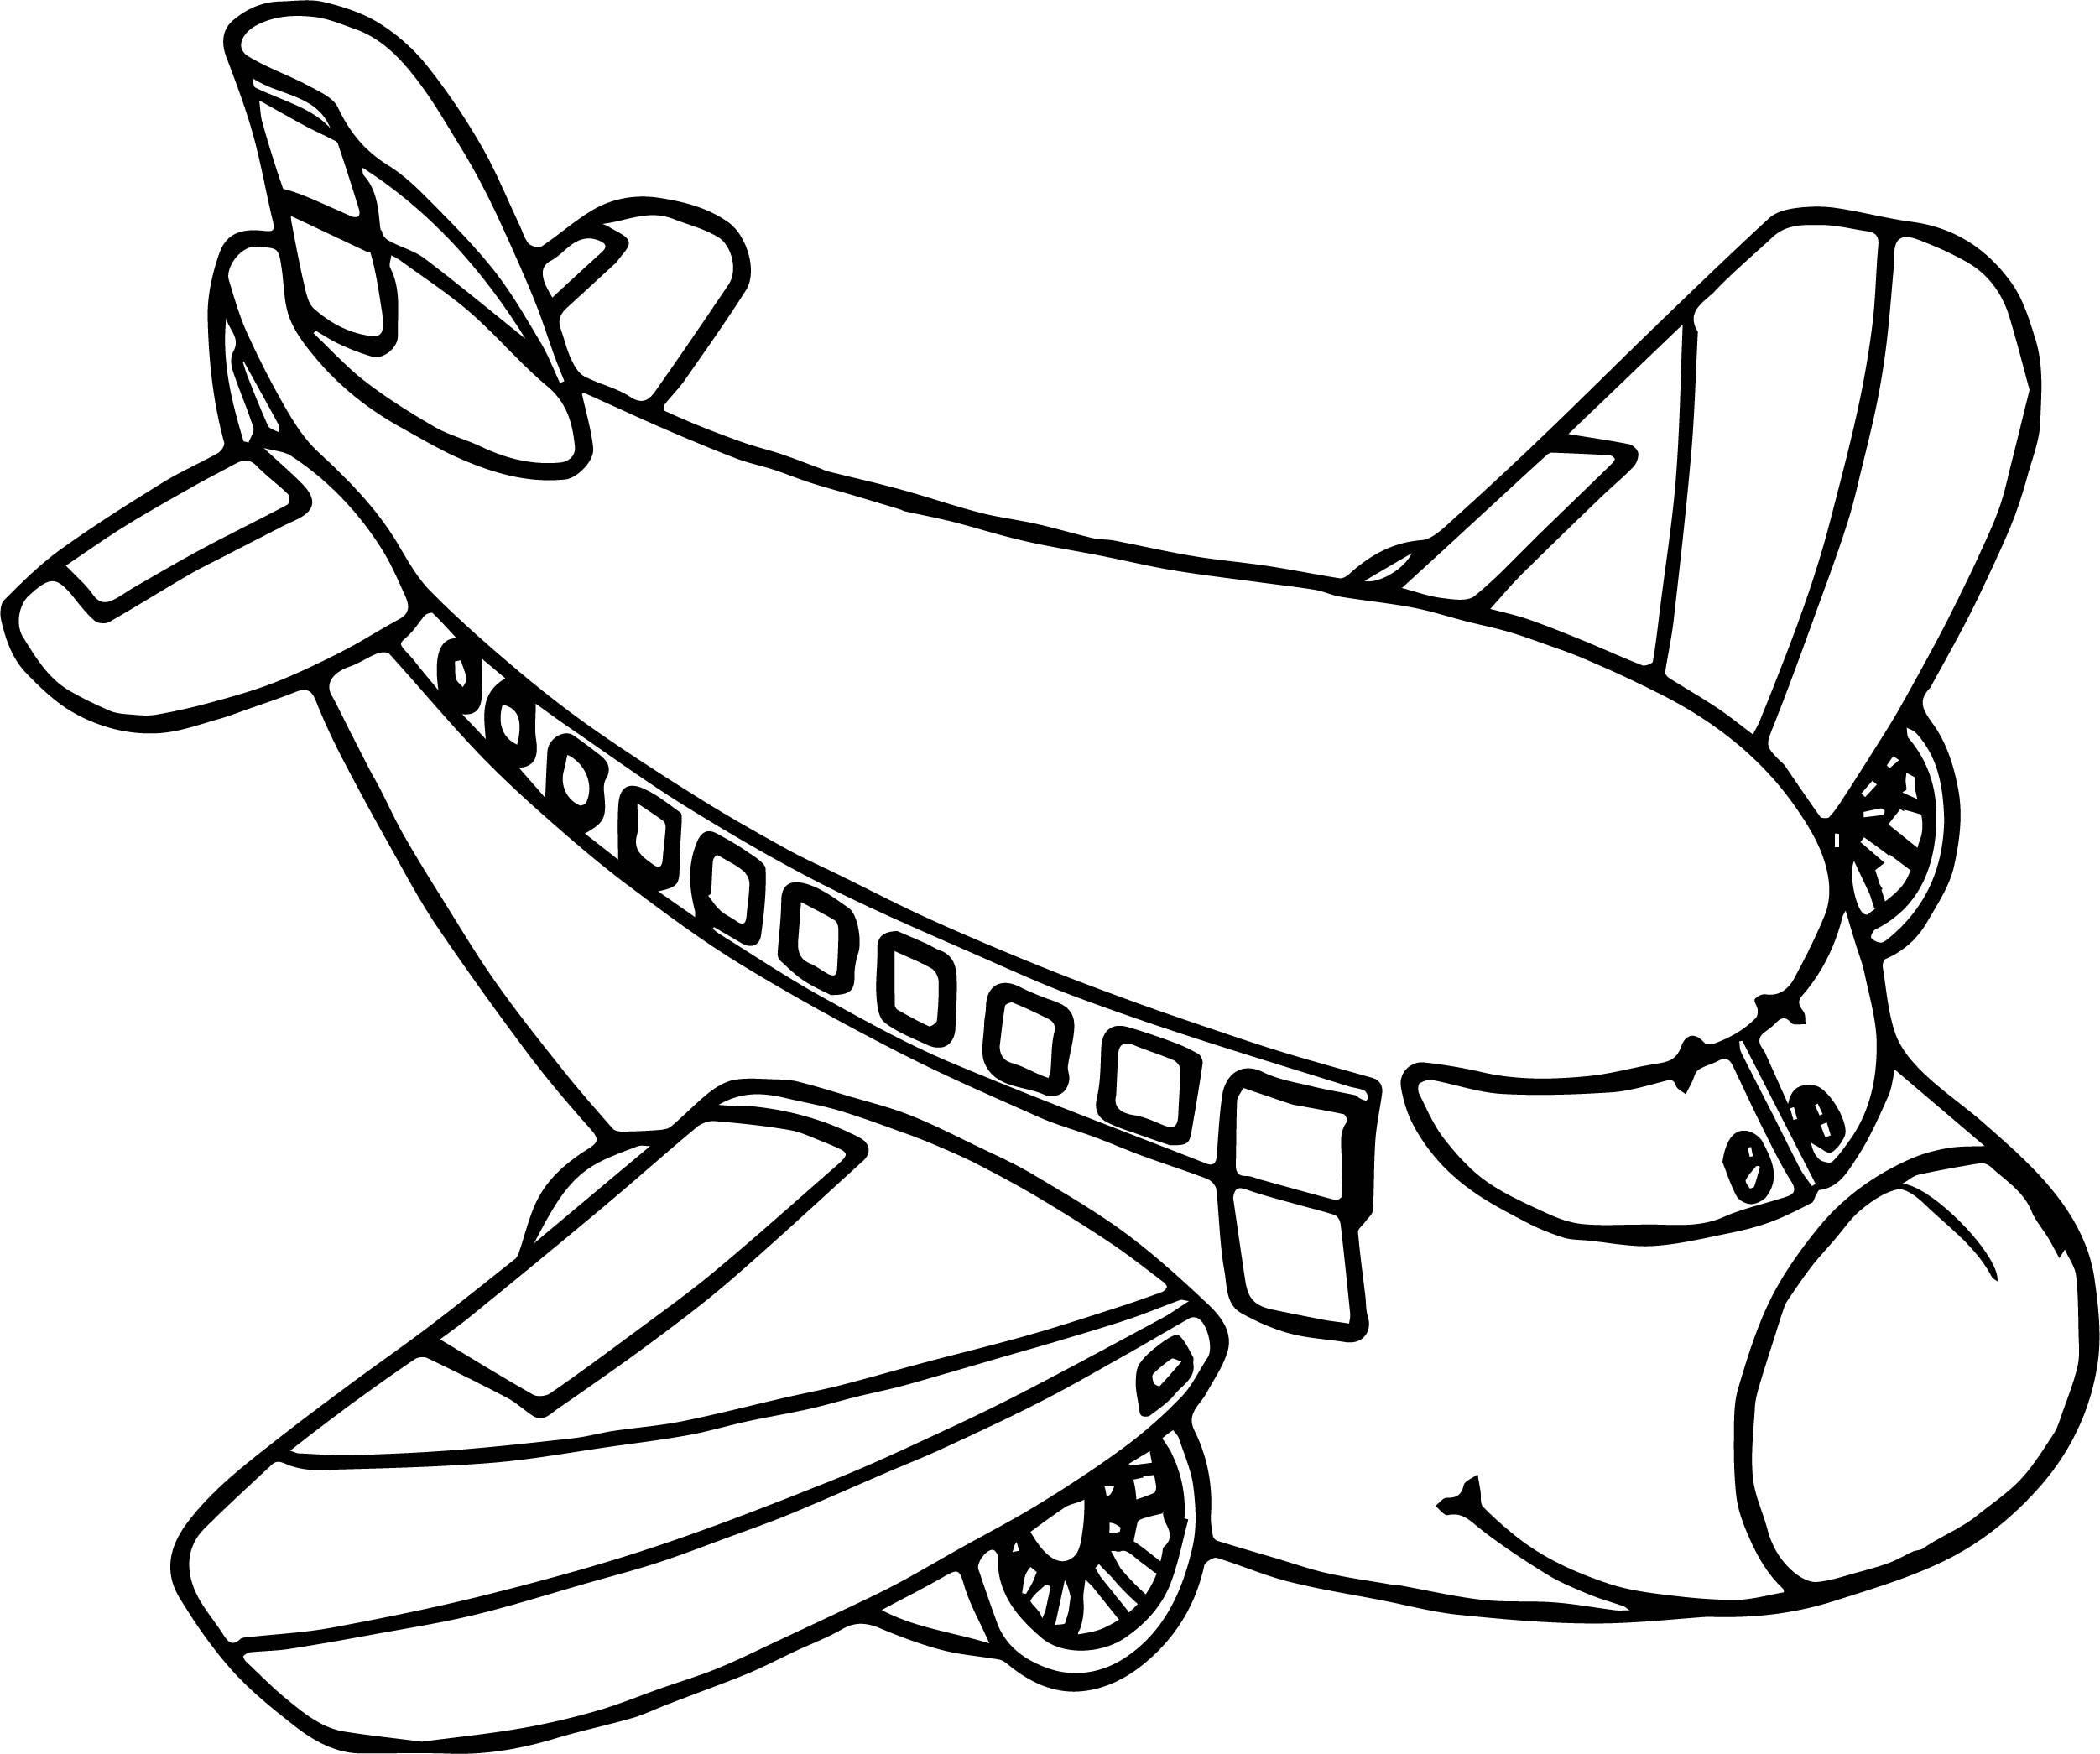 Vintage Airplane Coloring Pages At Getcolorings